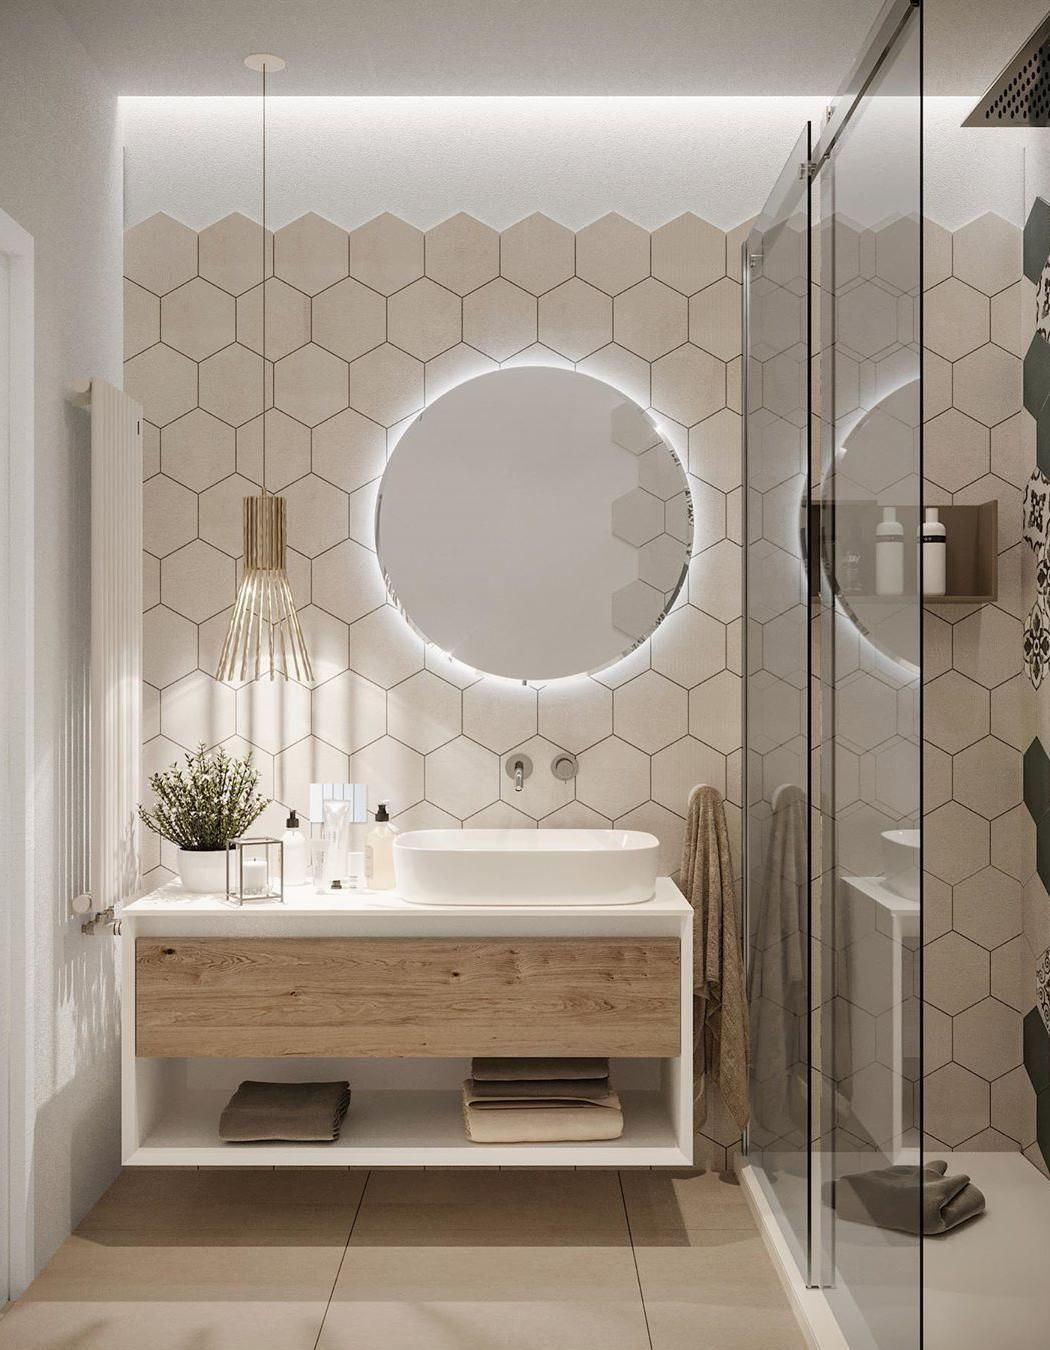 50 Small Bathroom Design Ideas For 2020 In 2020